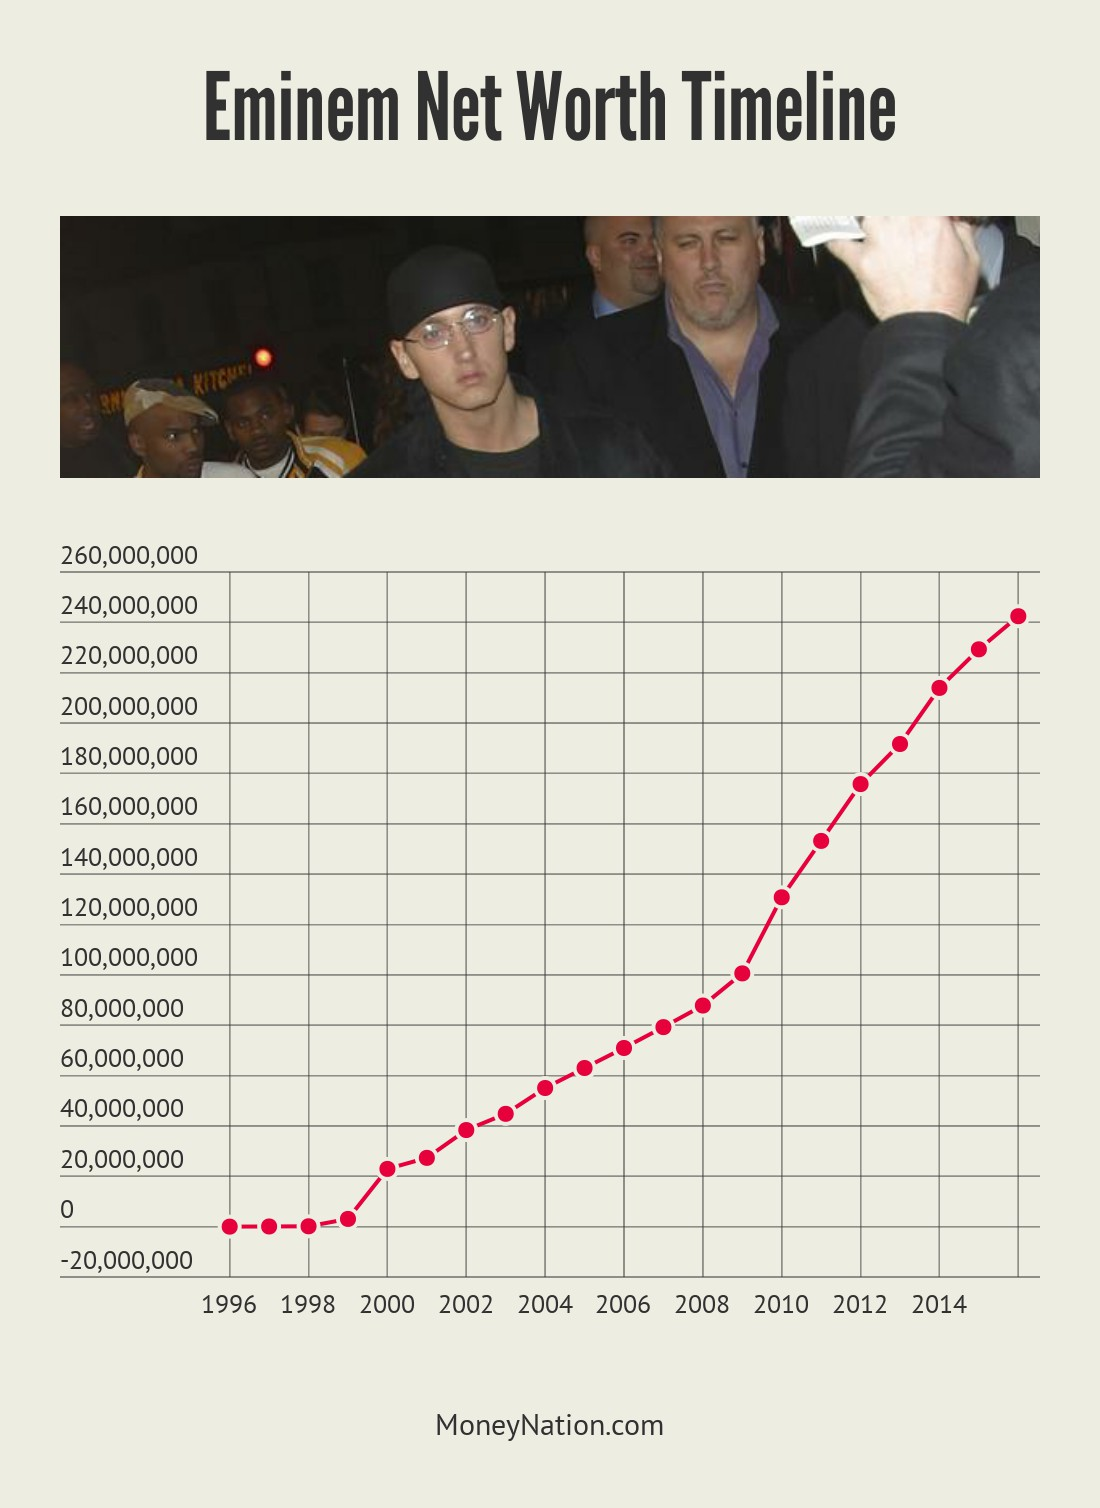 Eminem net worth timeline